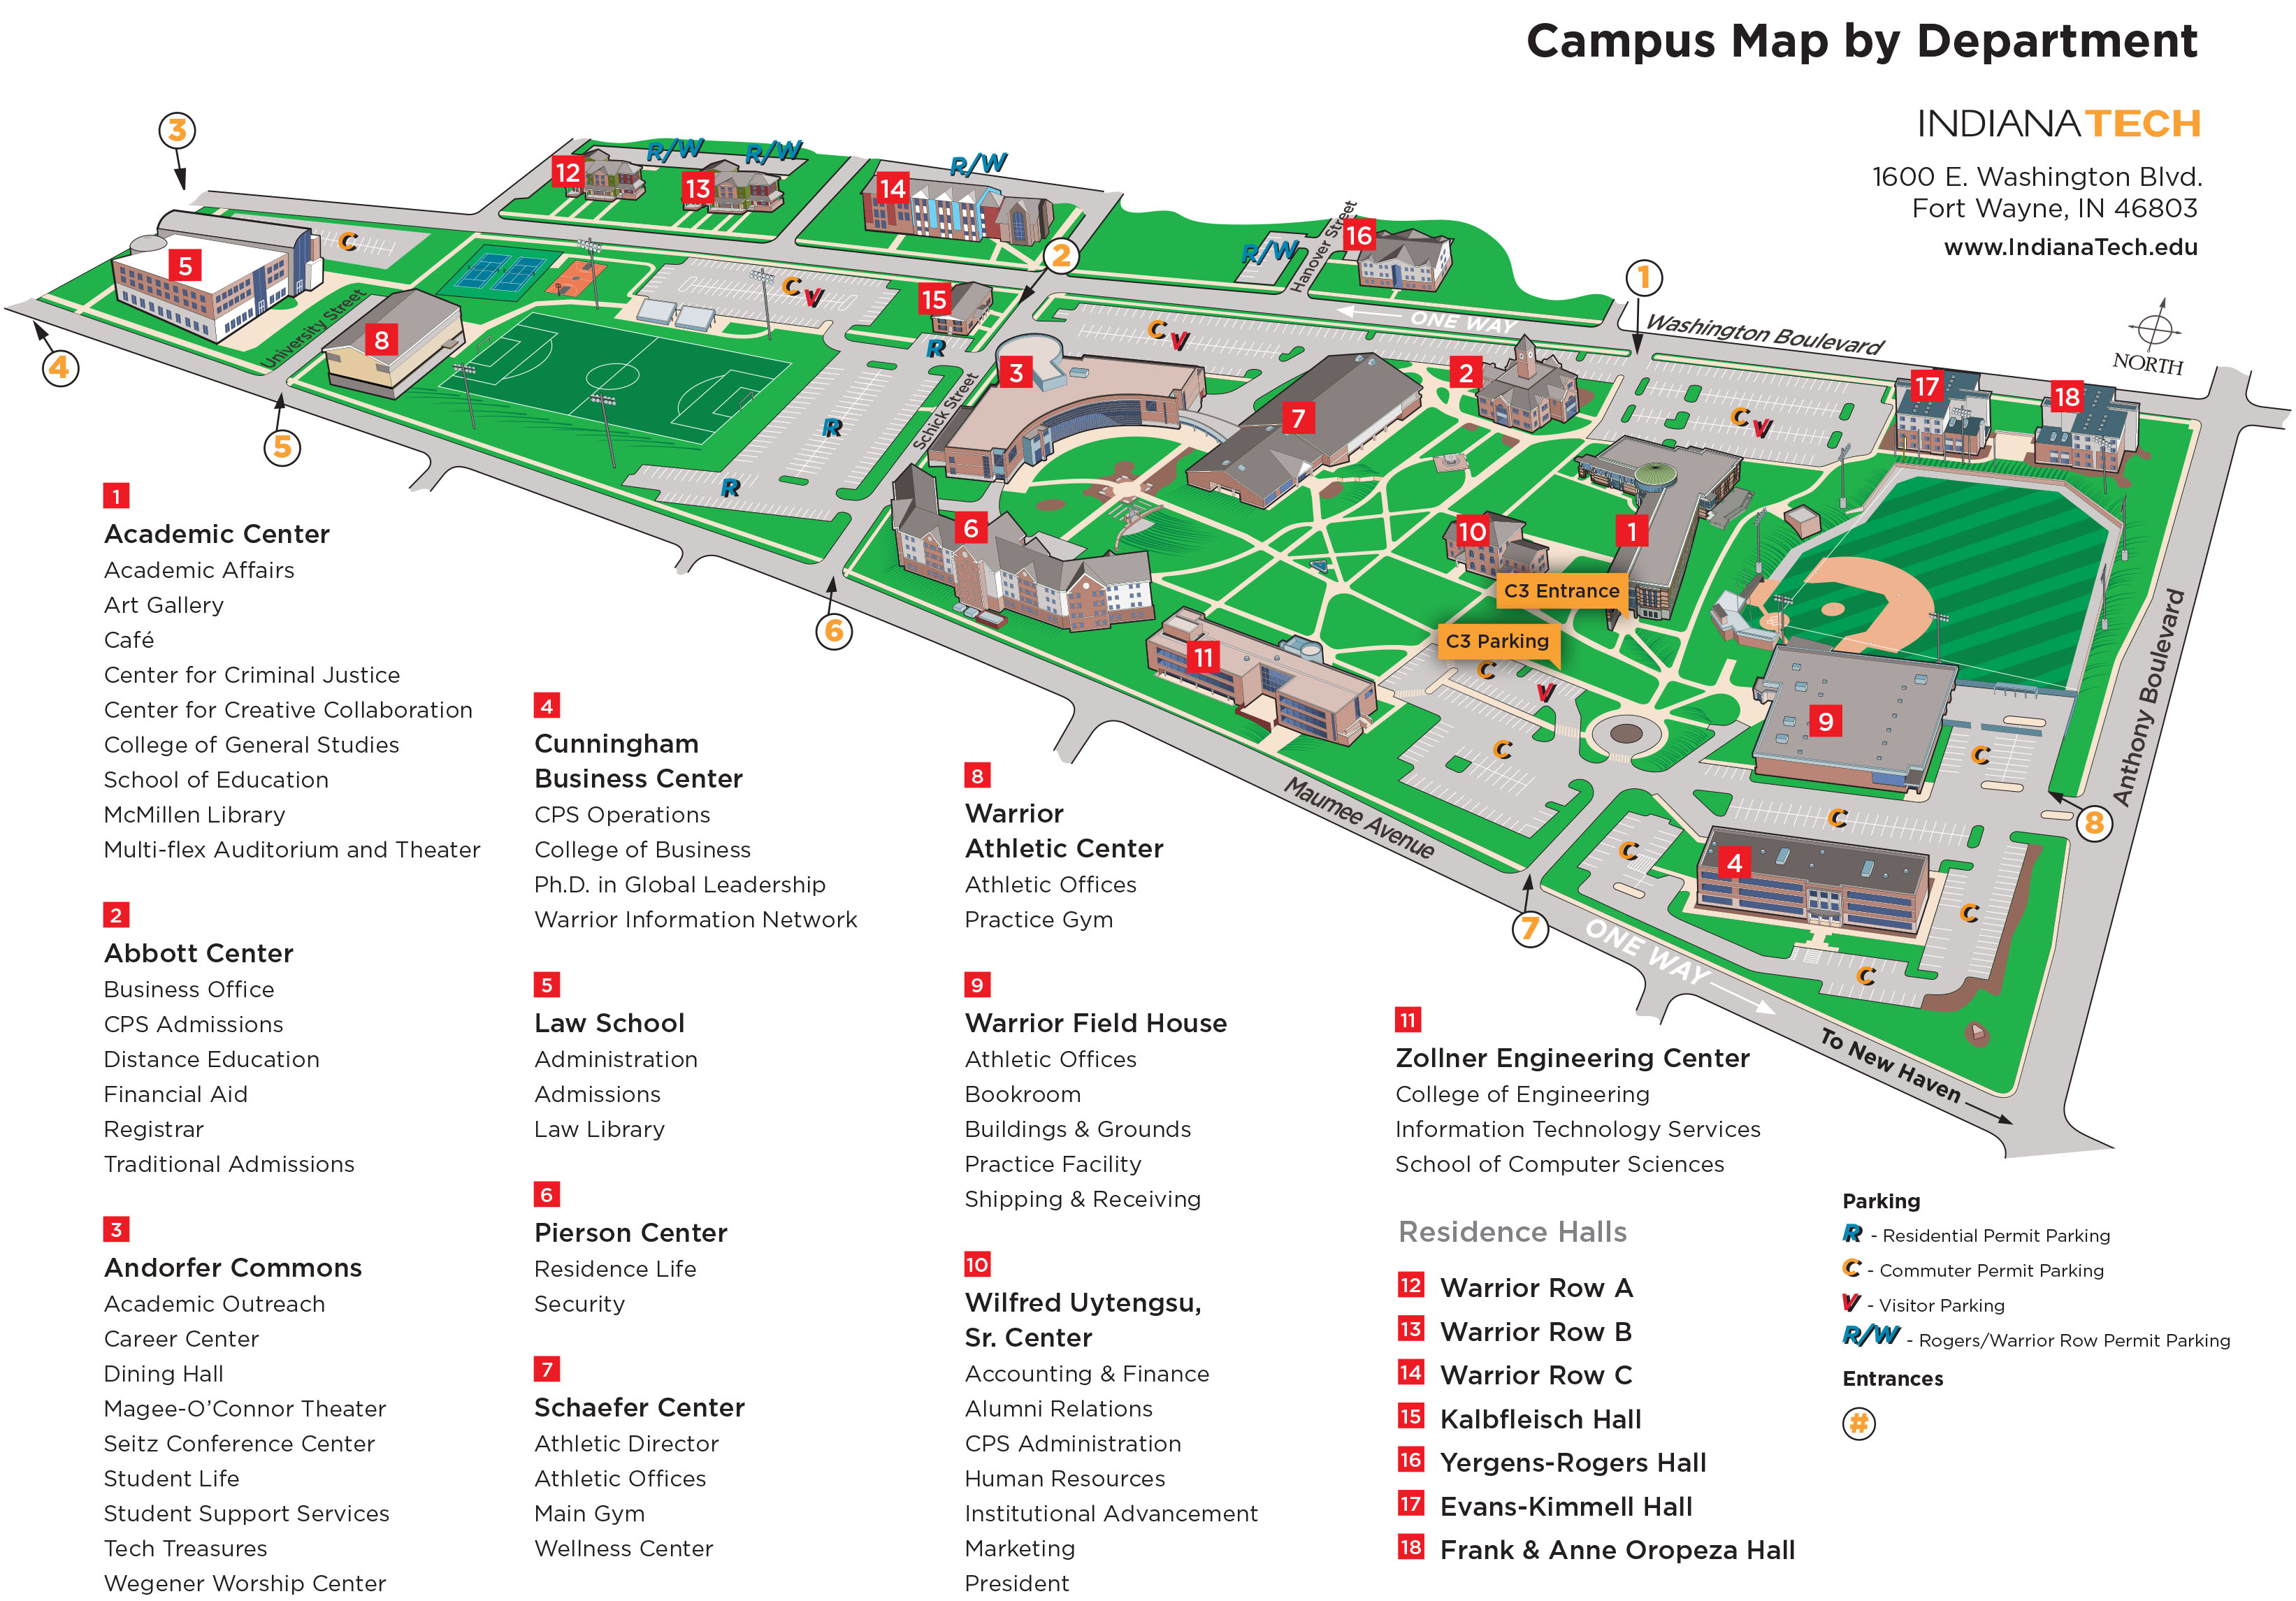 Indiana Tech Campus Map